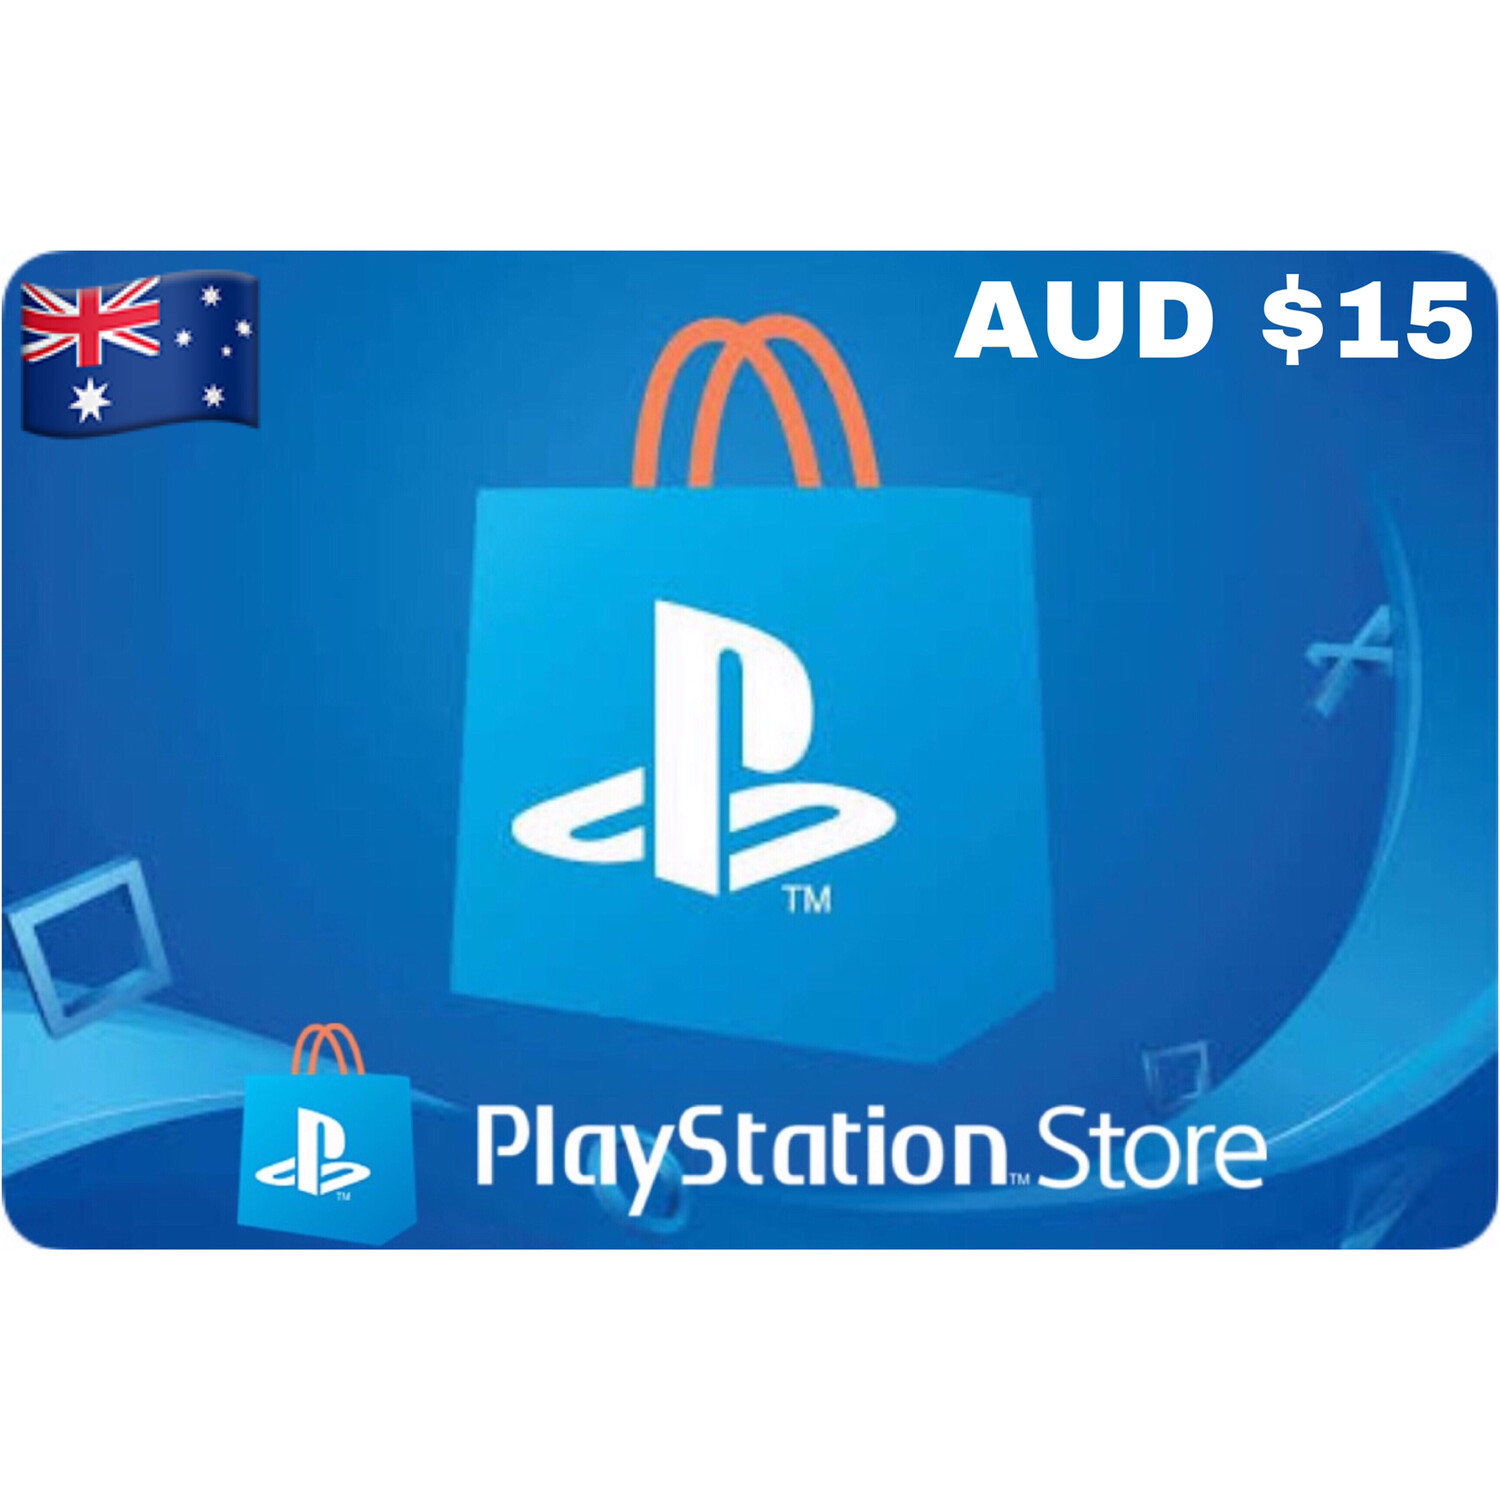 Playstation (PSN Card) Australia AUD $15